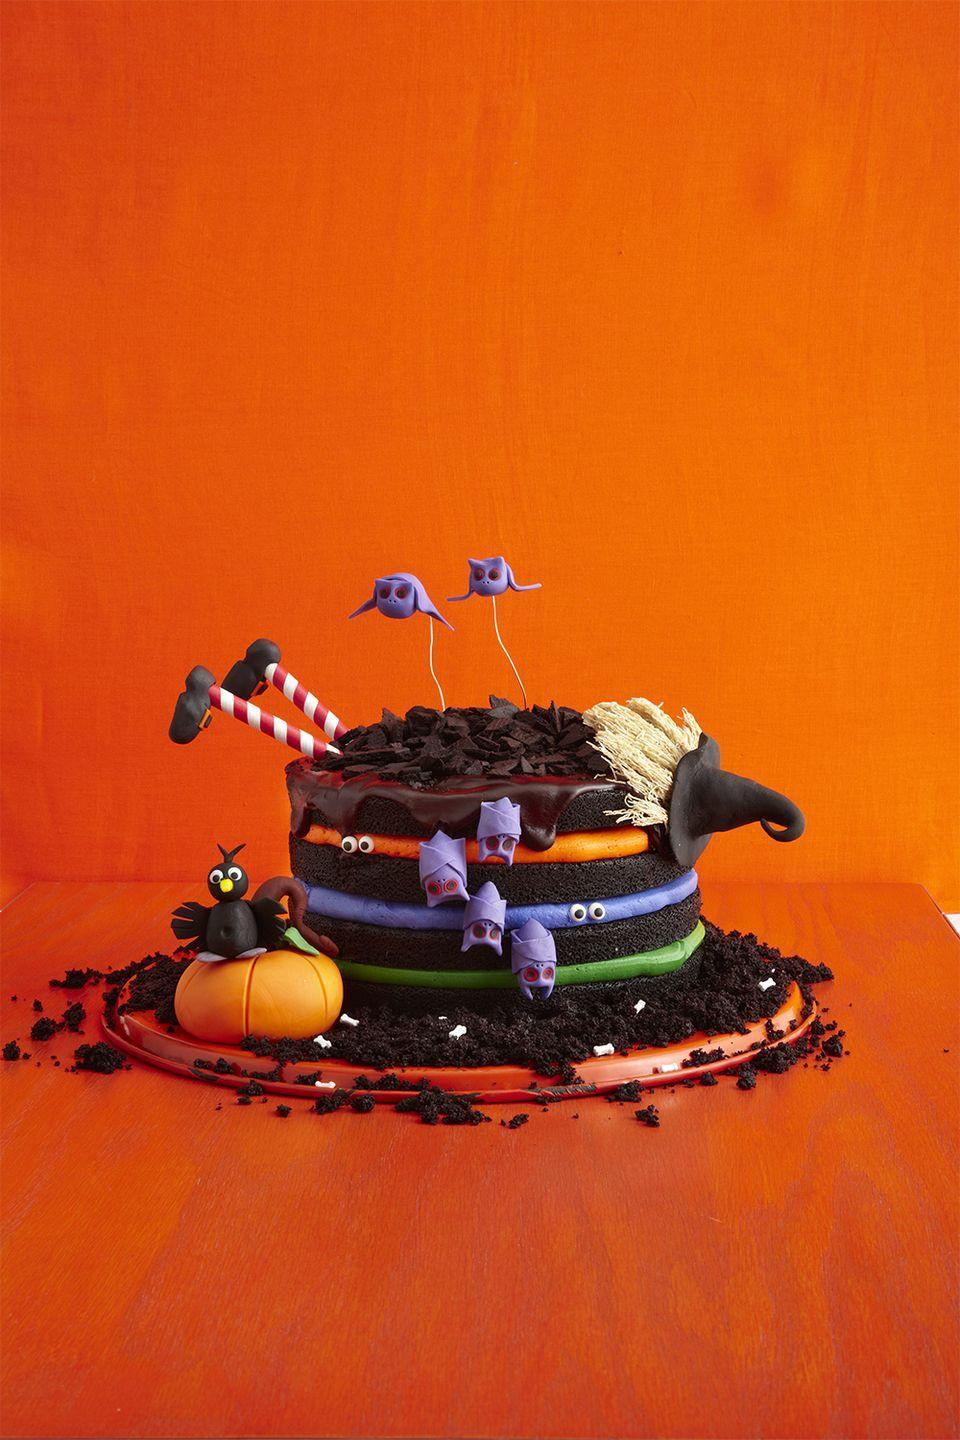 """<p>Can you blame the witch for flying into a cake this delicious? Homemade buttercream frosting and spooky decorations just add to the fun.</p><p><em><a href=""""https://www.womansday.com/food-recipes/food-drinks/recipes/a51843/black-chocolate-cake/"""" rel=""""nofollow noopener"""" target=""""_blank"""" data-ylk=""""slk:Get the Black Chocolate Witch Cake recipe."""" class=""""link rapid-noclick-resp"""">Get the Black Chocolate Witch Cake recipe.</a></em></p>"""